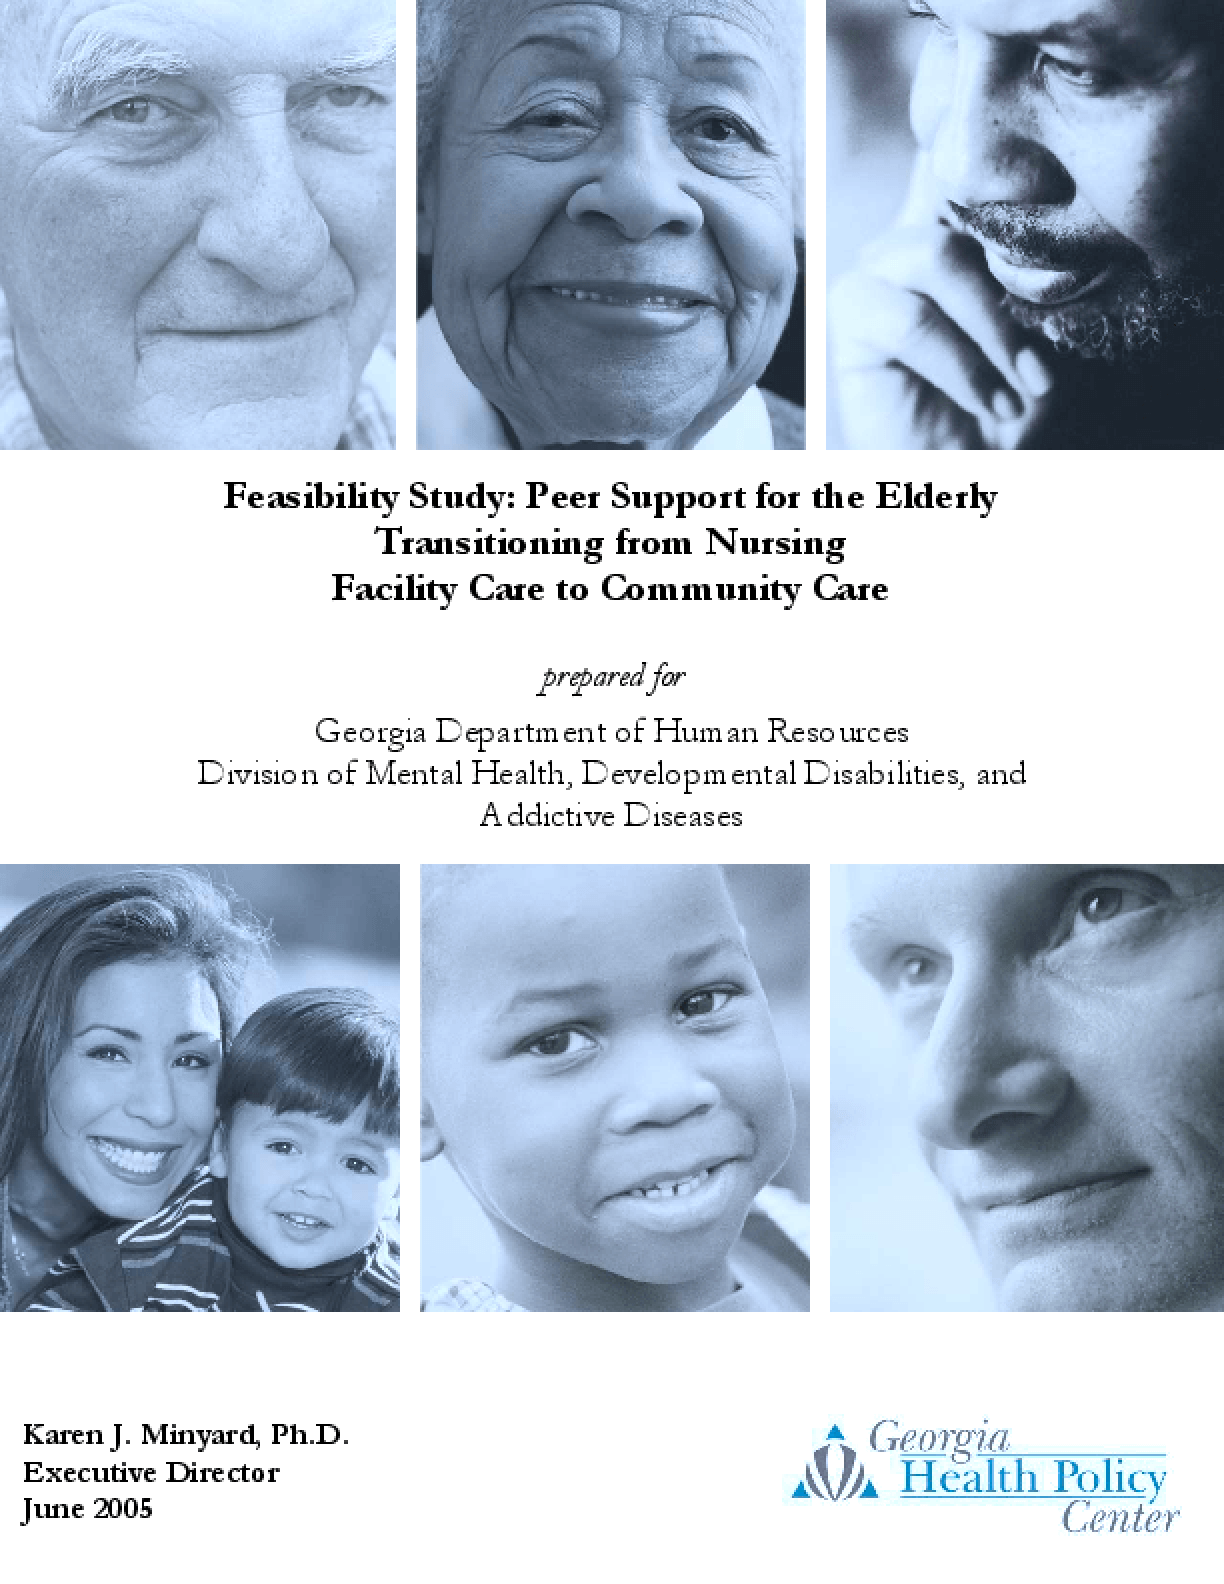 Feasibility Study: Peer Support for the Elderly Transitioning from Nursing Facility Care to Community Care